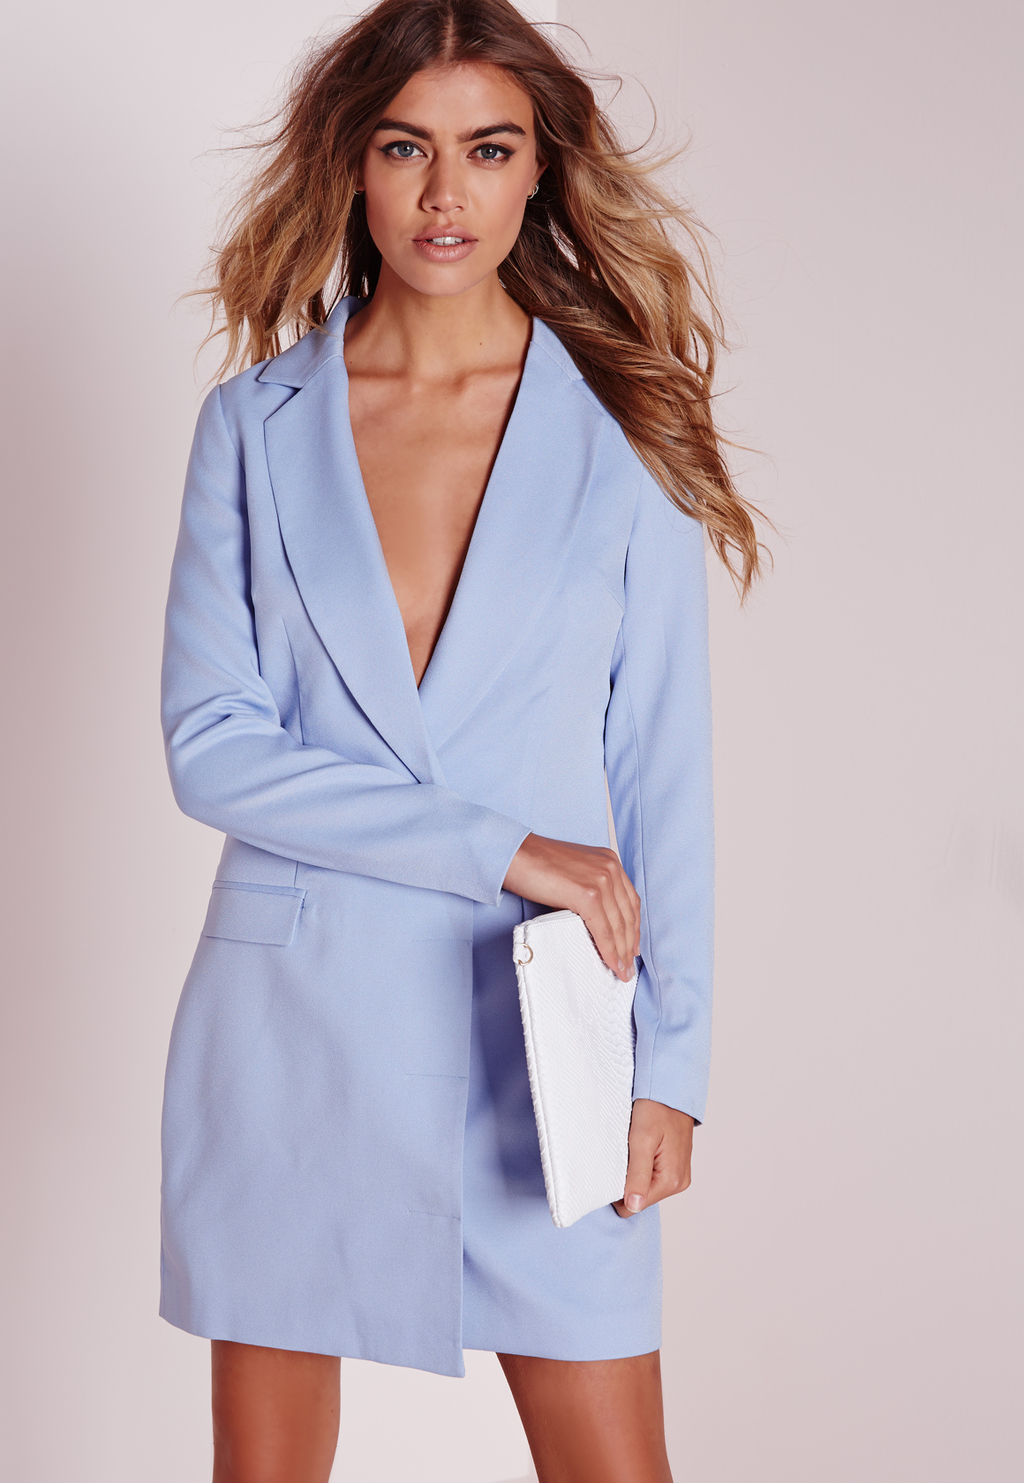 Long Sleeve Blazer Dress Powder Blue, Blue - style: shirt; length: mid thigh; neckline: v-neck; pattern: plain; predominant colour: pale blue; occasions: evening, creative work; fit: body skimming; fibres: polyester/polyamide - 100%; hip detail: subtle/flattering hip detail; sleeve length: long sleeve; sleeve style: standard; texture group: crepes; pattern type: fabric; season: s/s 2016; wardrobe: highlight